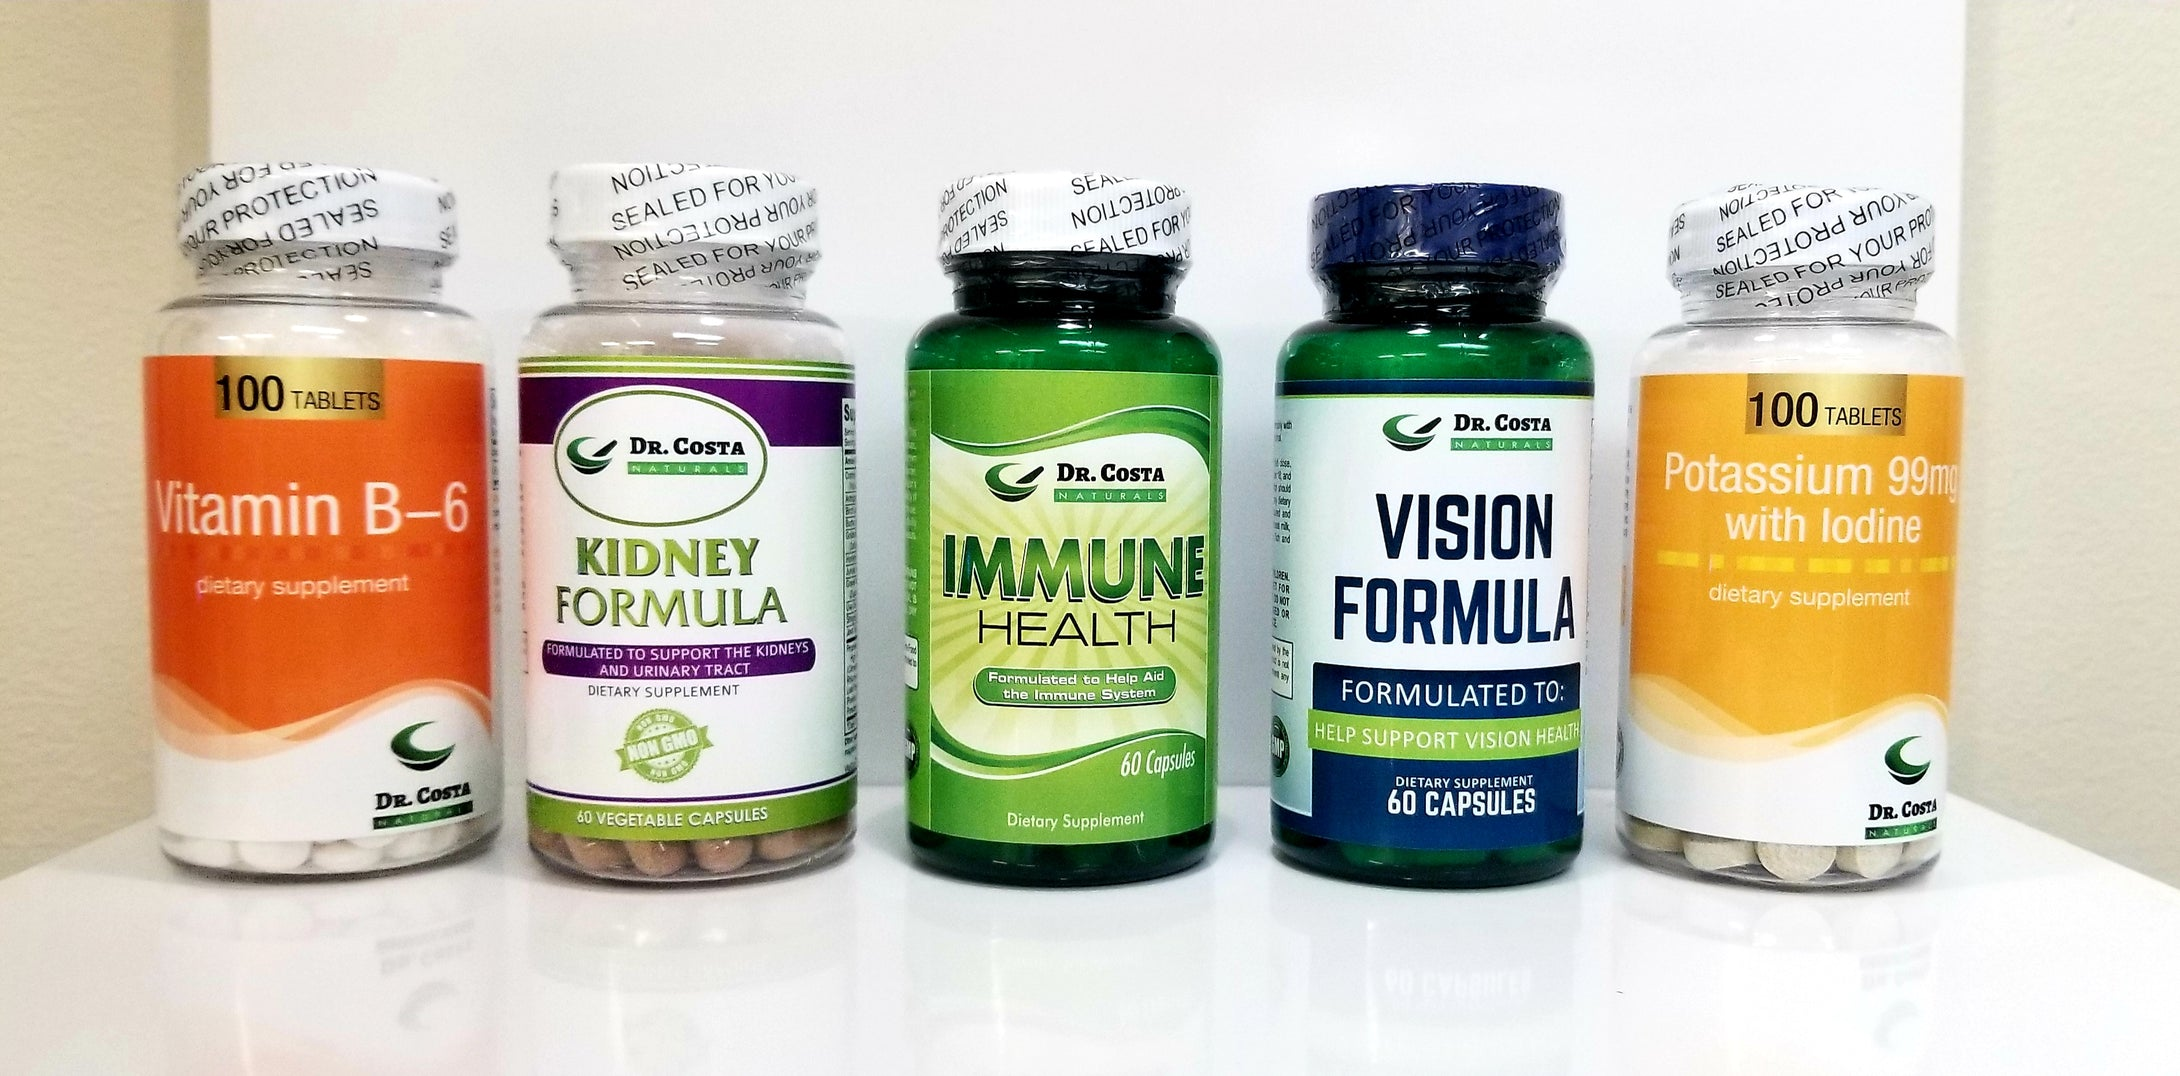 Vitamin B-6,  Kidney Formula, Immune Health, Vision Formula and Potassium